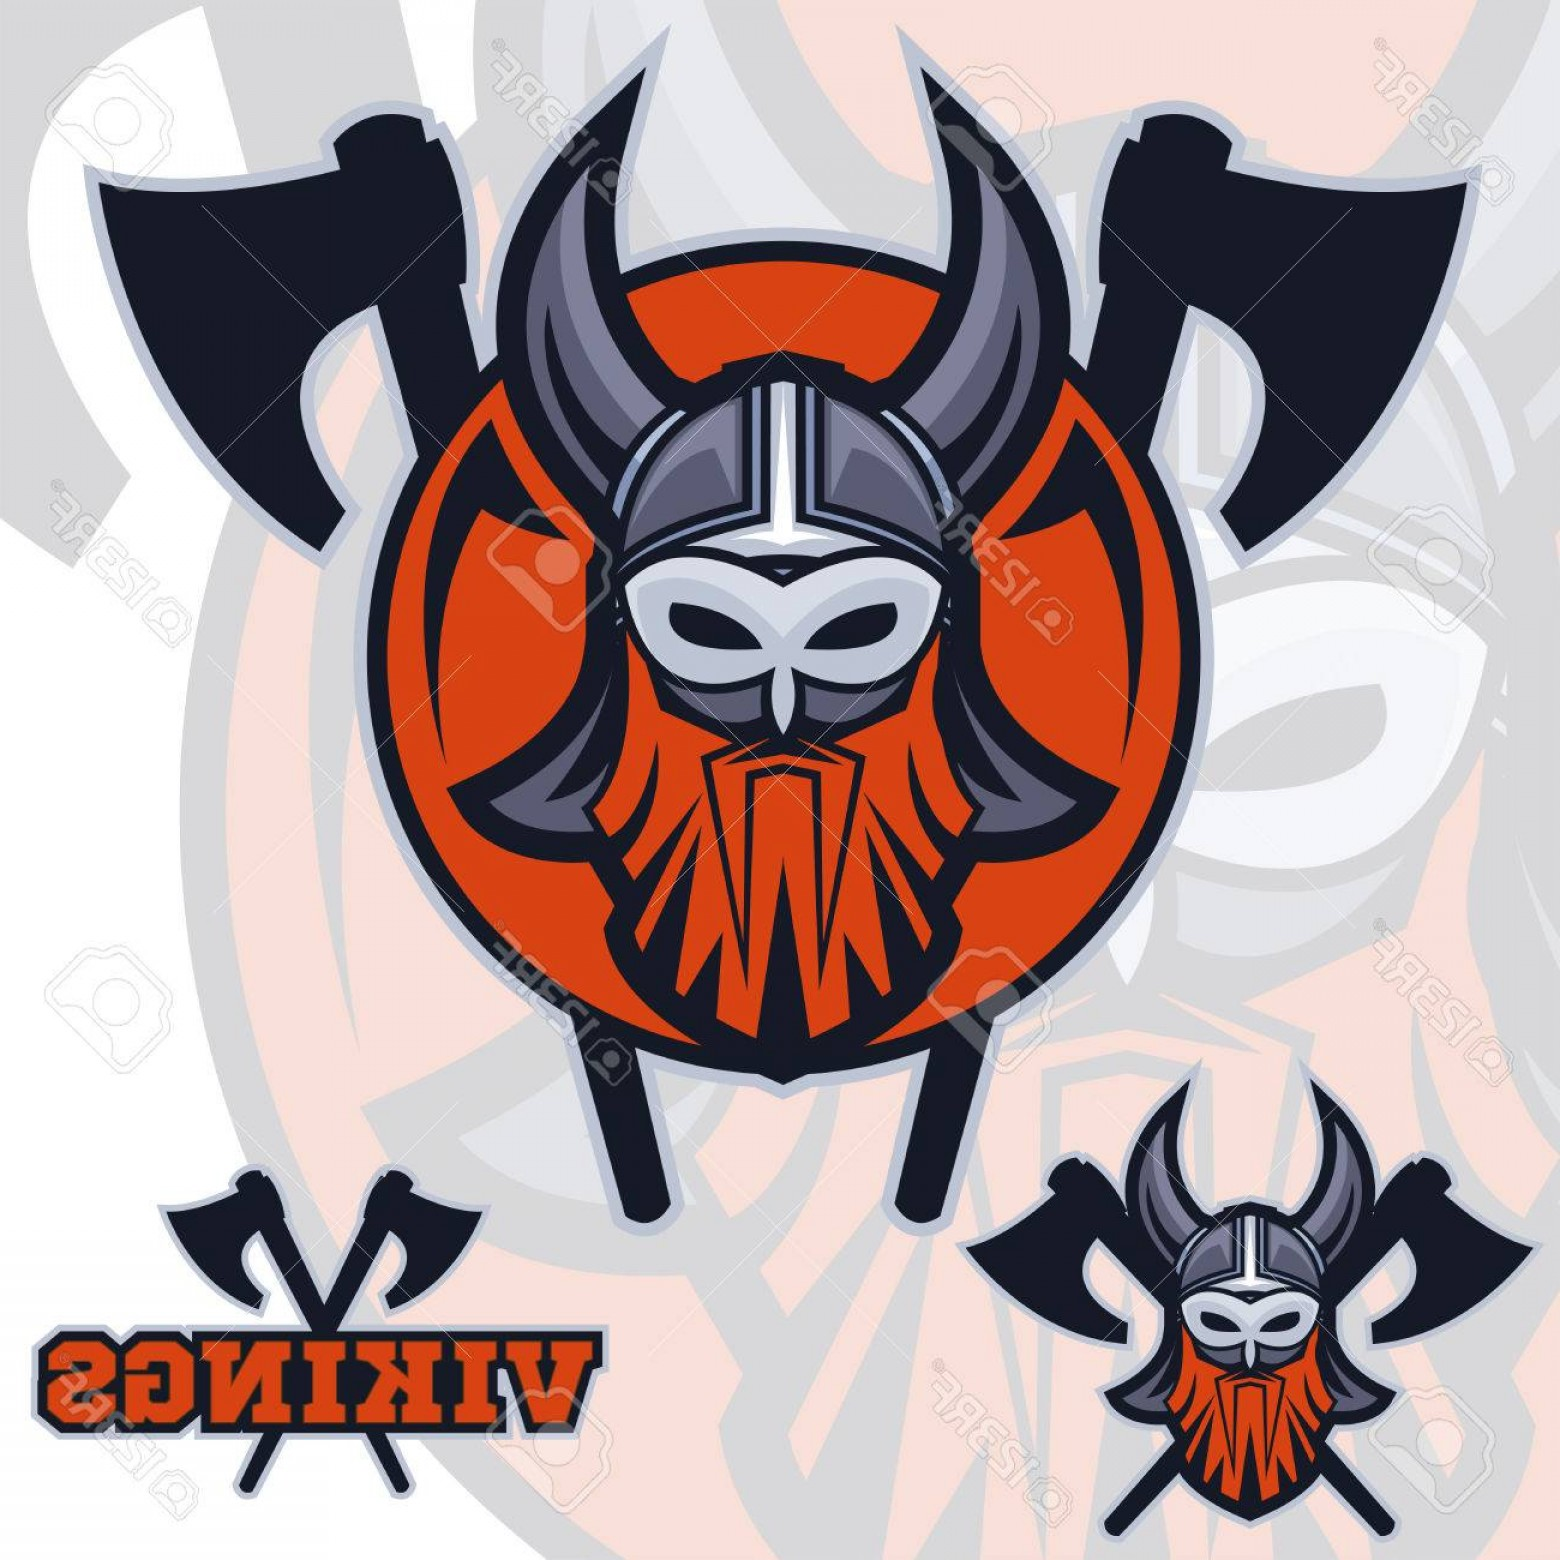 Vector Shining Armor Angry: Photostock Vector Team Vikings Mascot Logo Sport Logotype